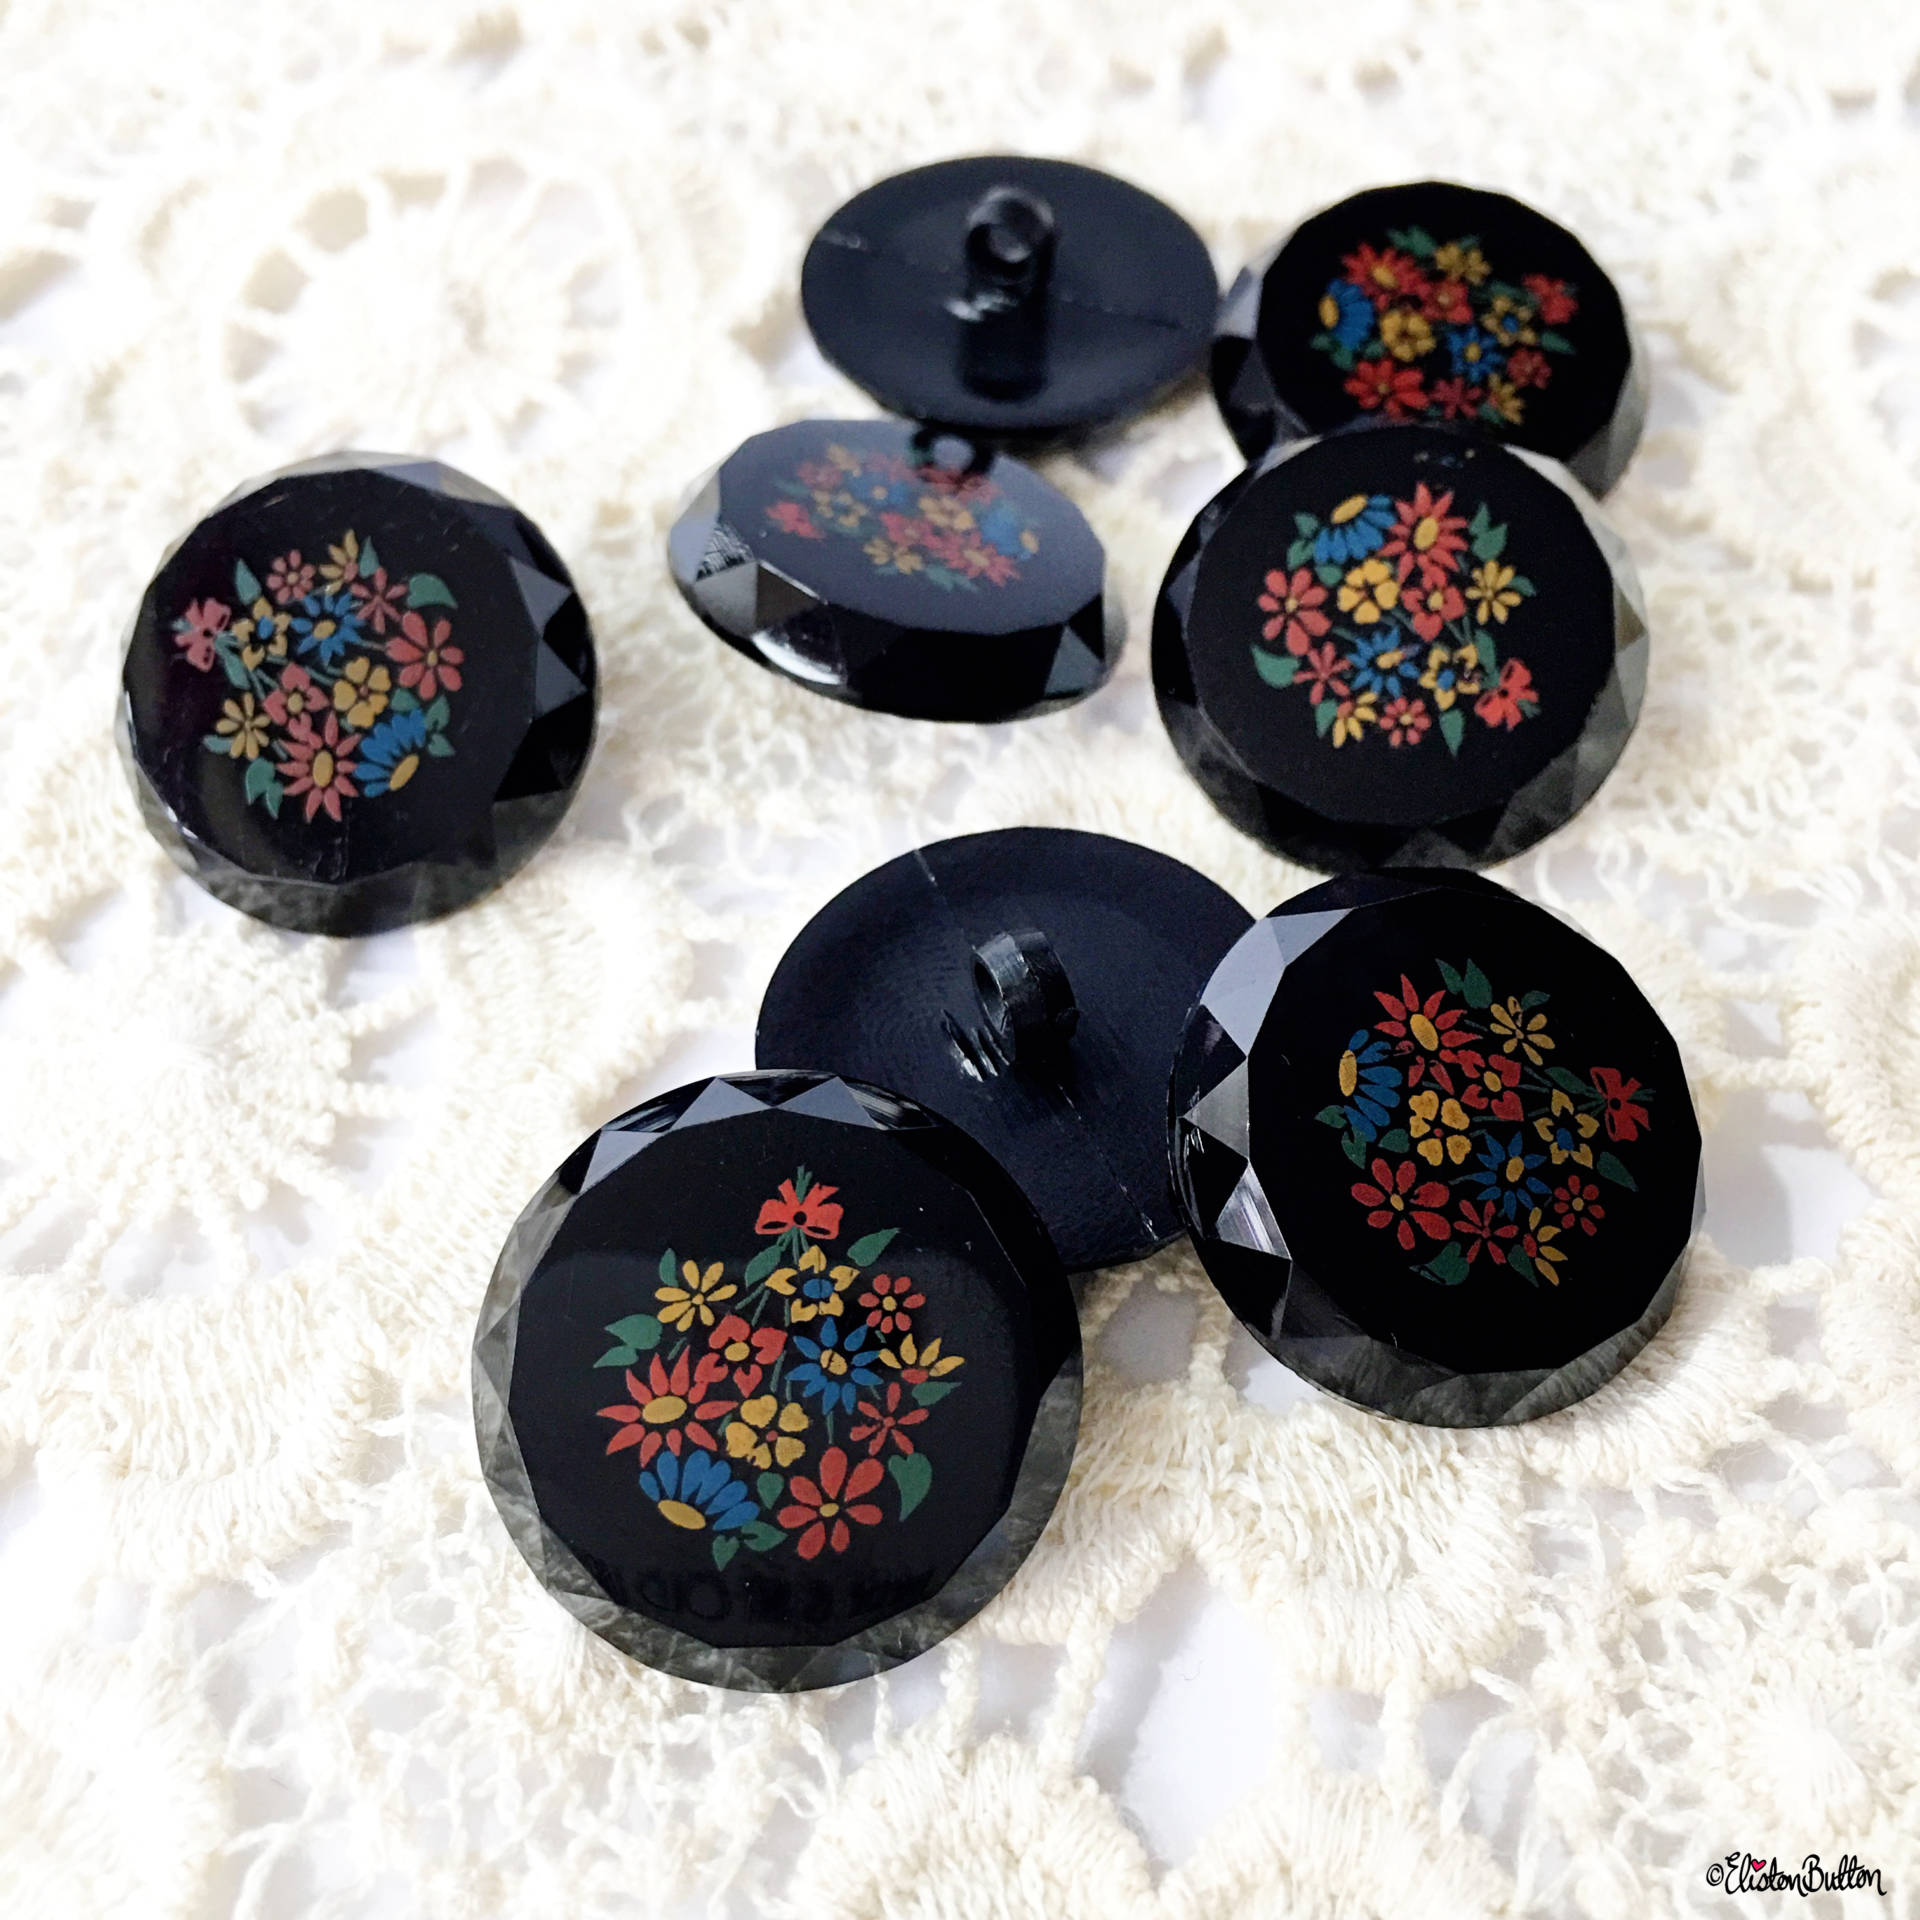 Vintage Style Floral and Multifaceted Edge Buttons - Around Here…September 2016 at www.elistonbutton.com - Eliston Button - That Crafty Kid – Art, Design, Craft & Adventure.